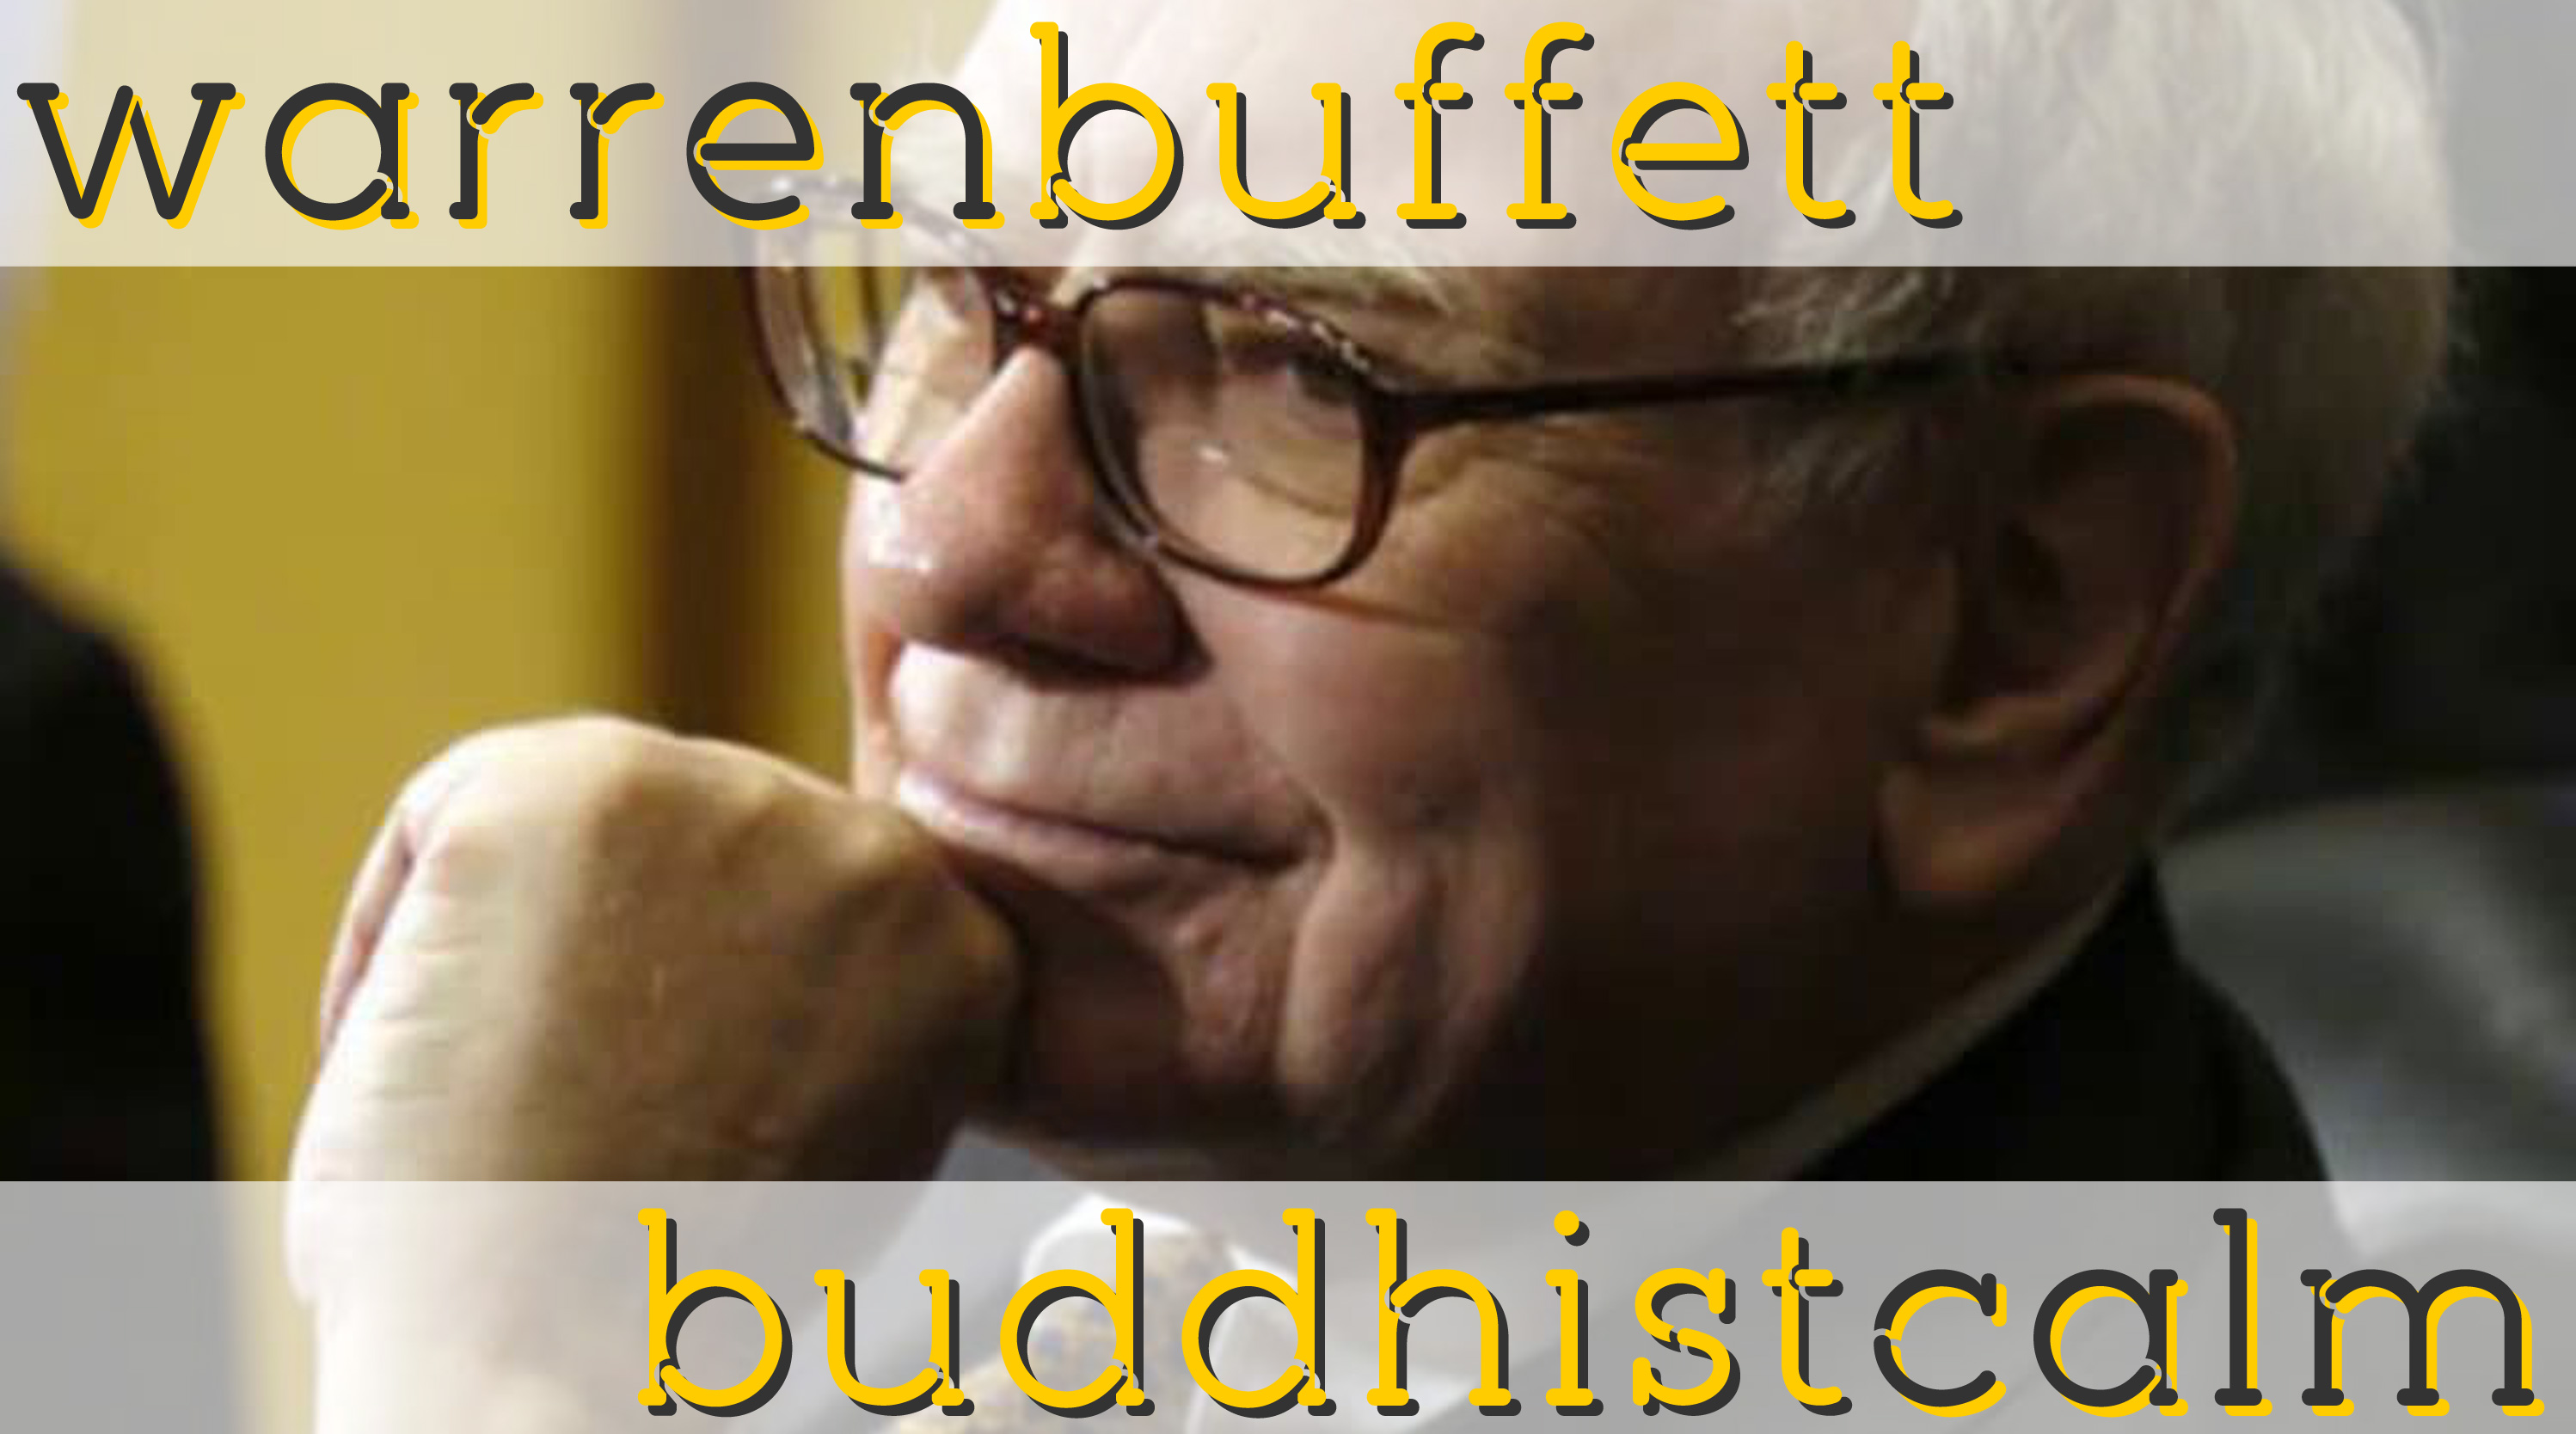 Warren Buffett's Success Isn't Just Due to His Money Skills–It's Because He Stays Calm